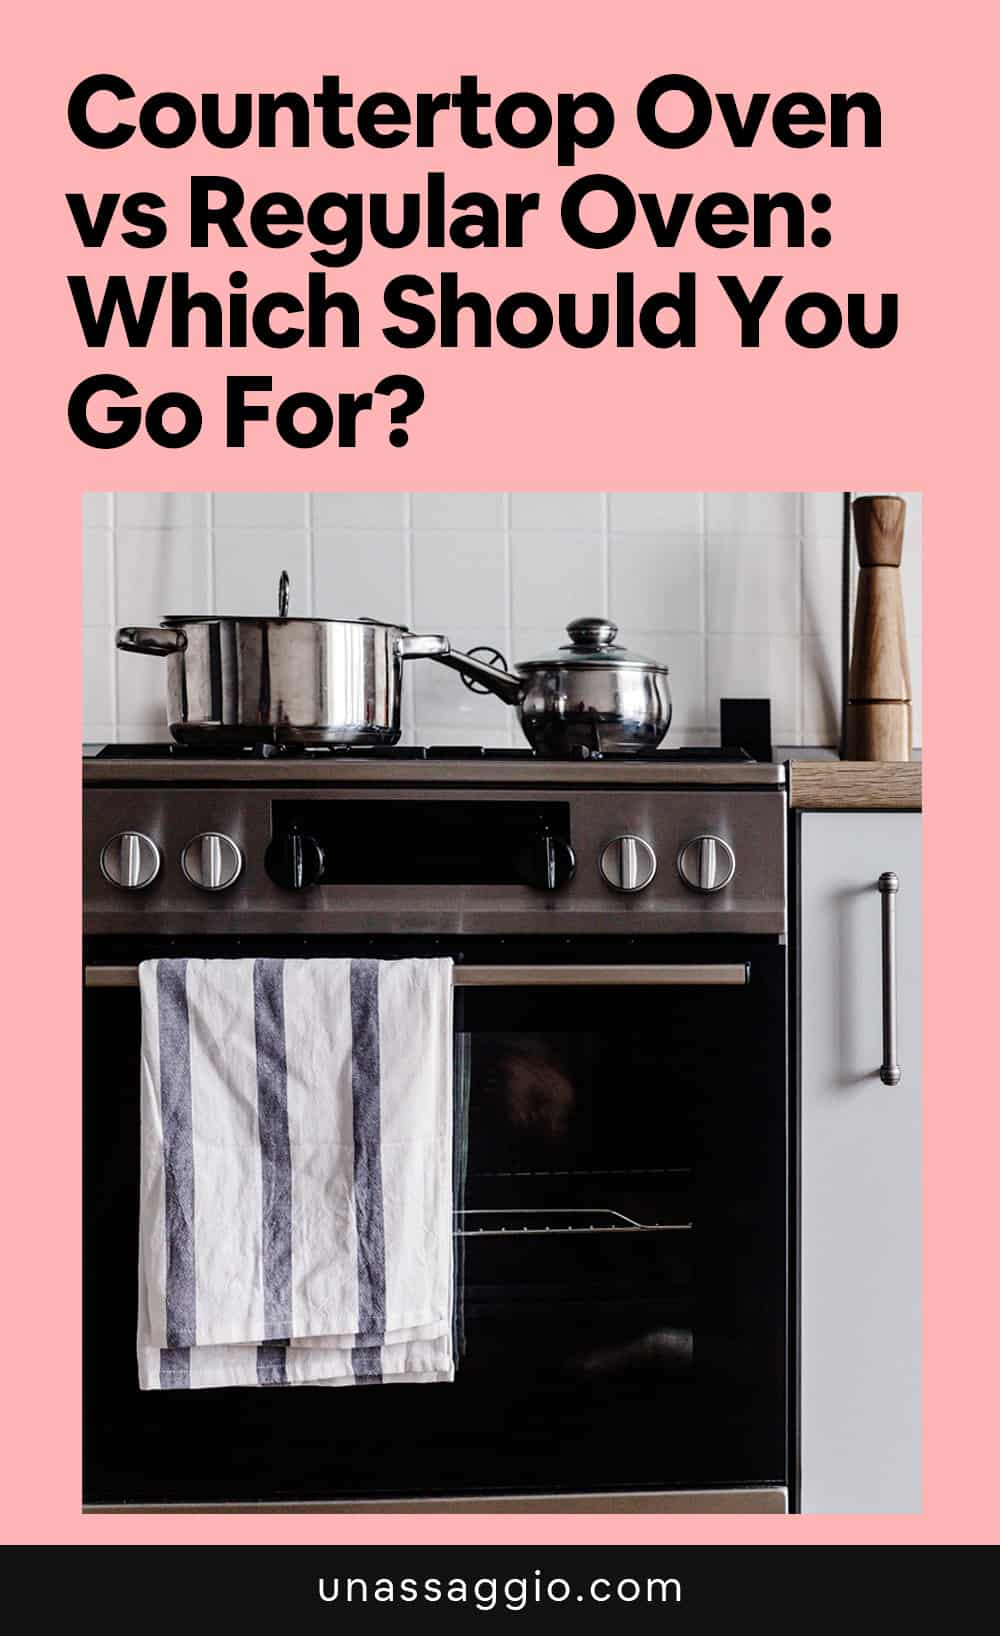 Countertop Oven vs Regular Oven: Which Should You Go For?